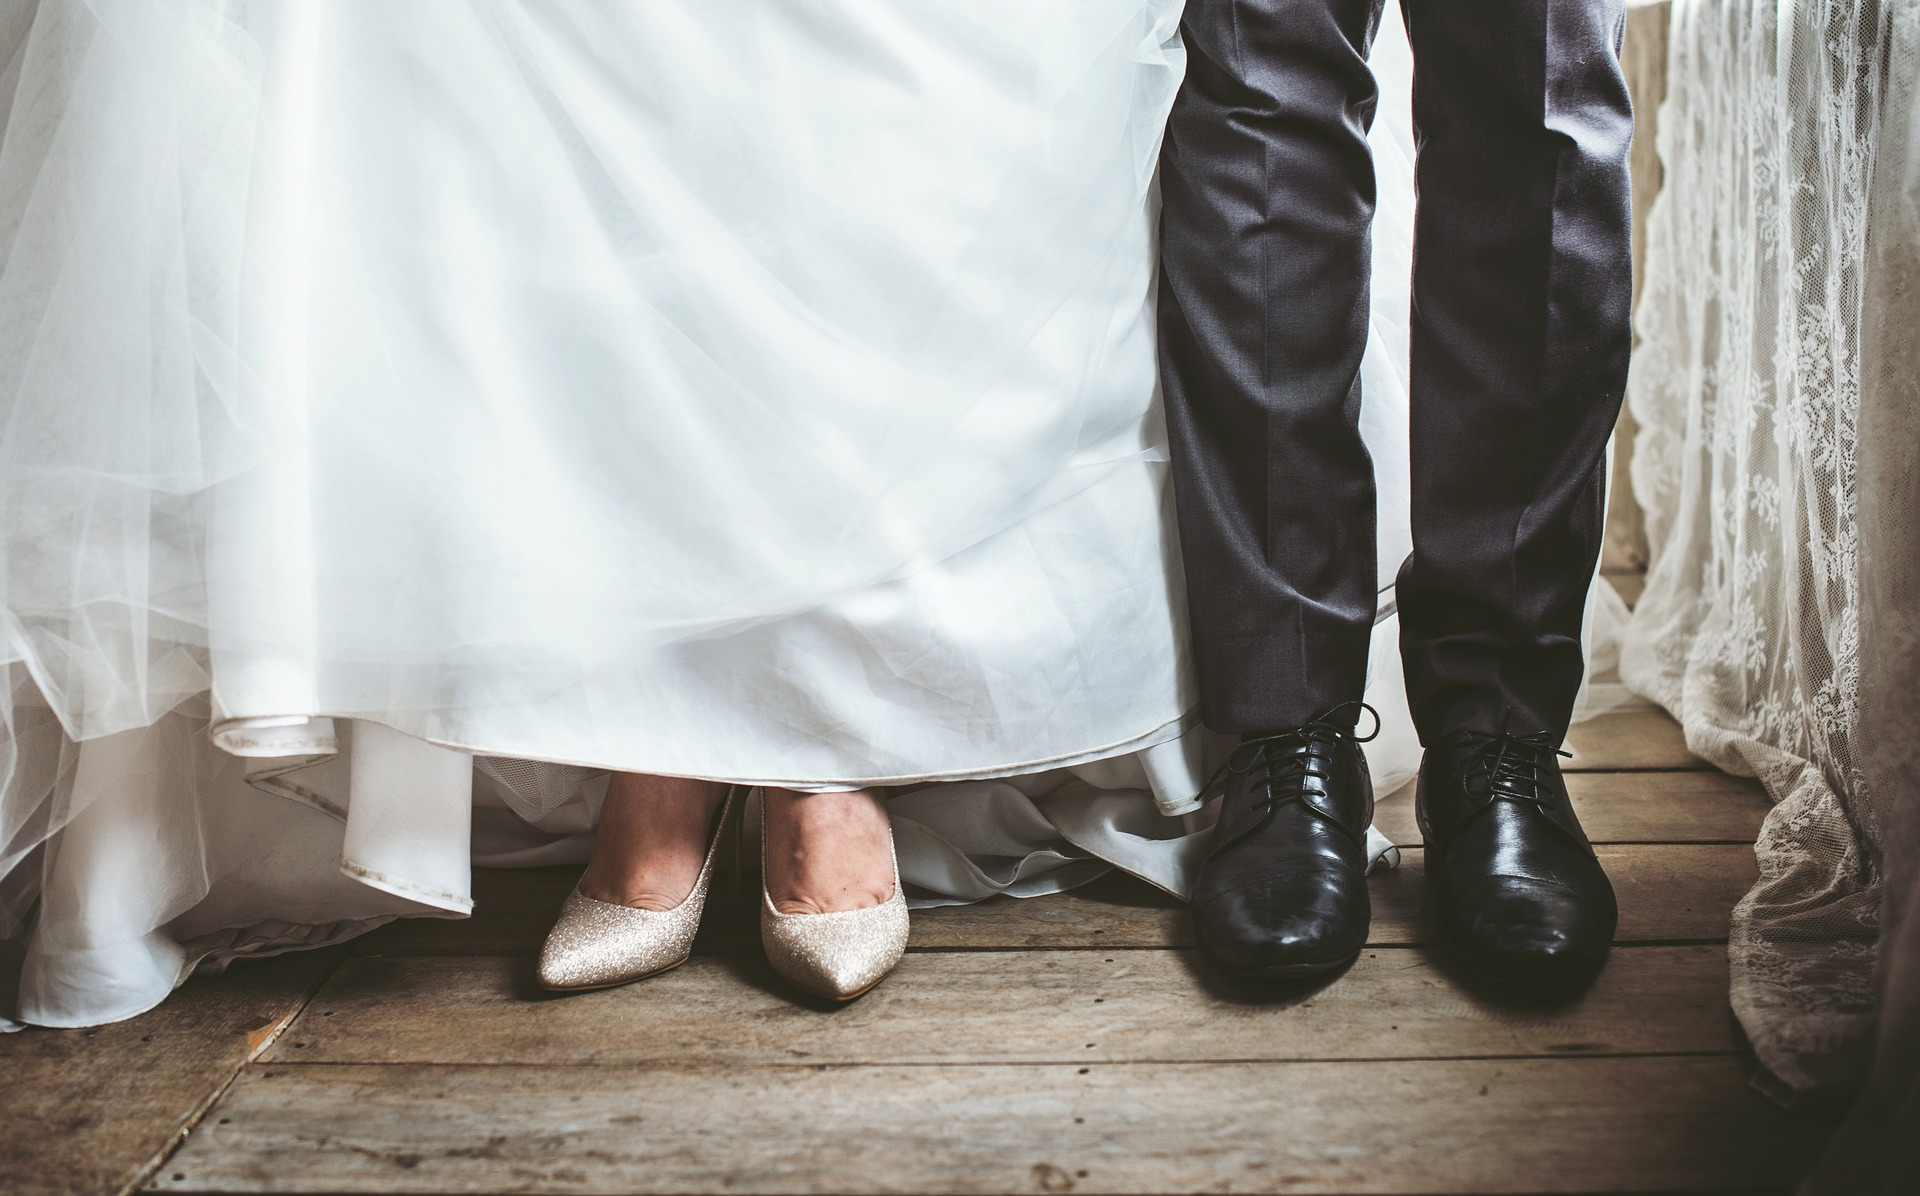 When you get married, what happens to Medicare premiums and the Homestead Rebate?